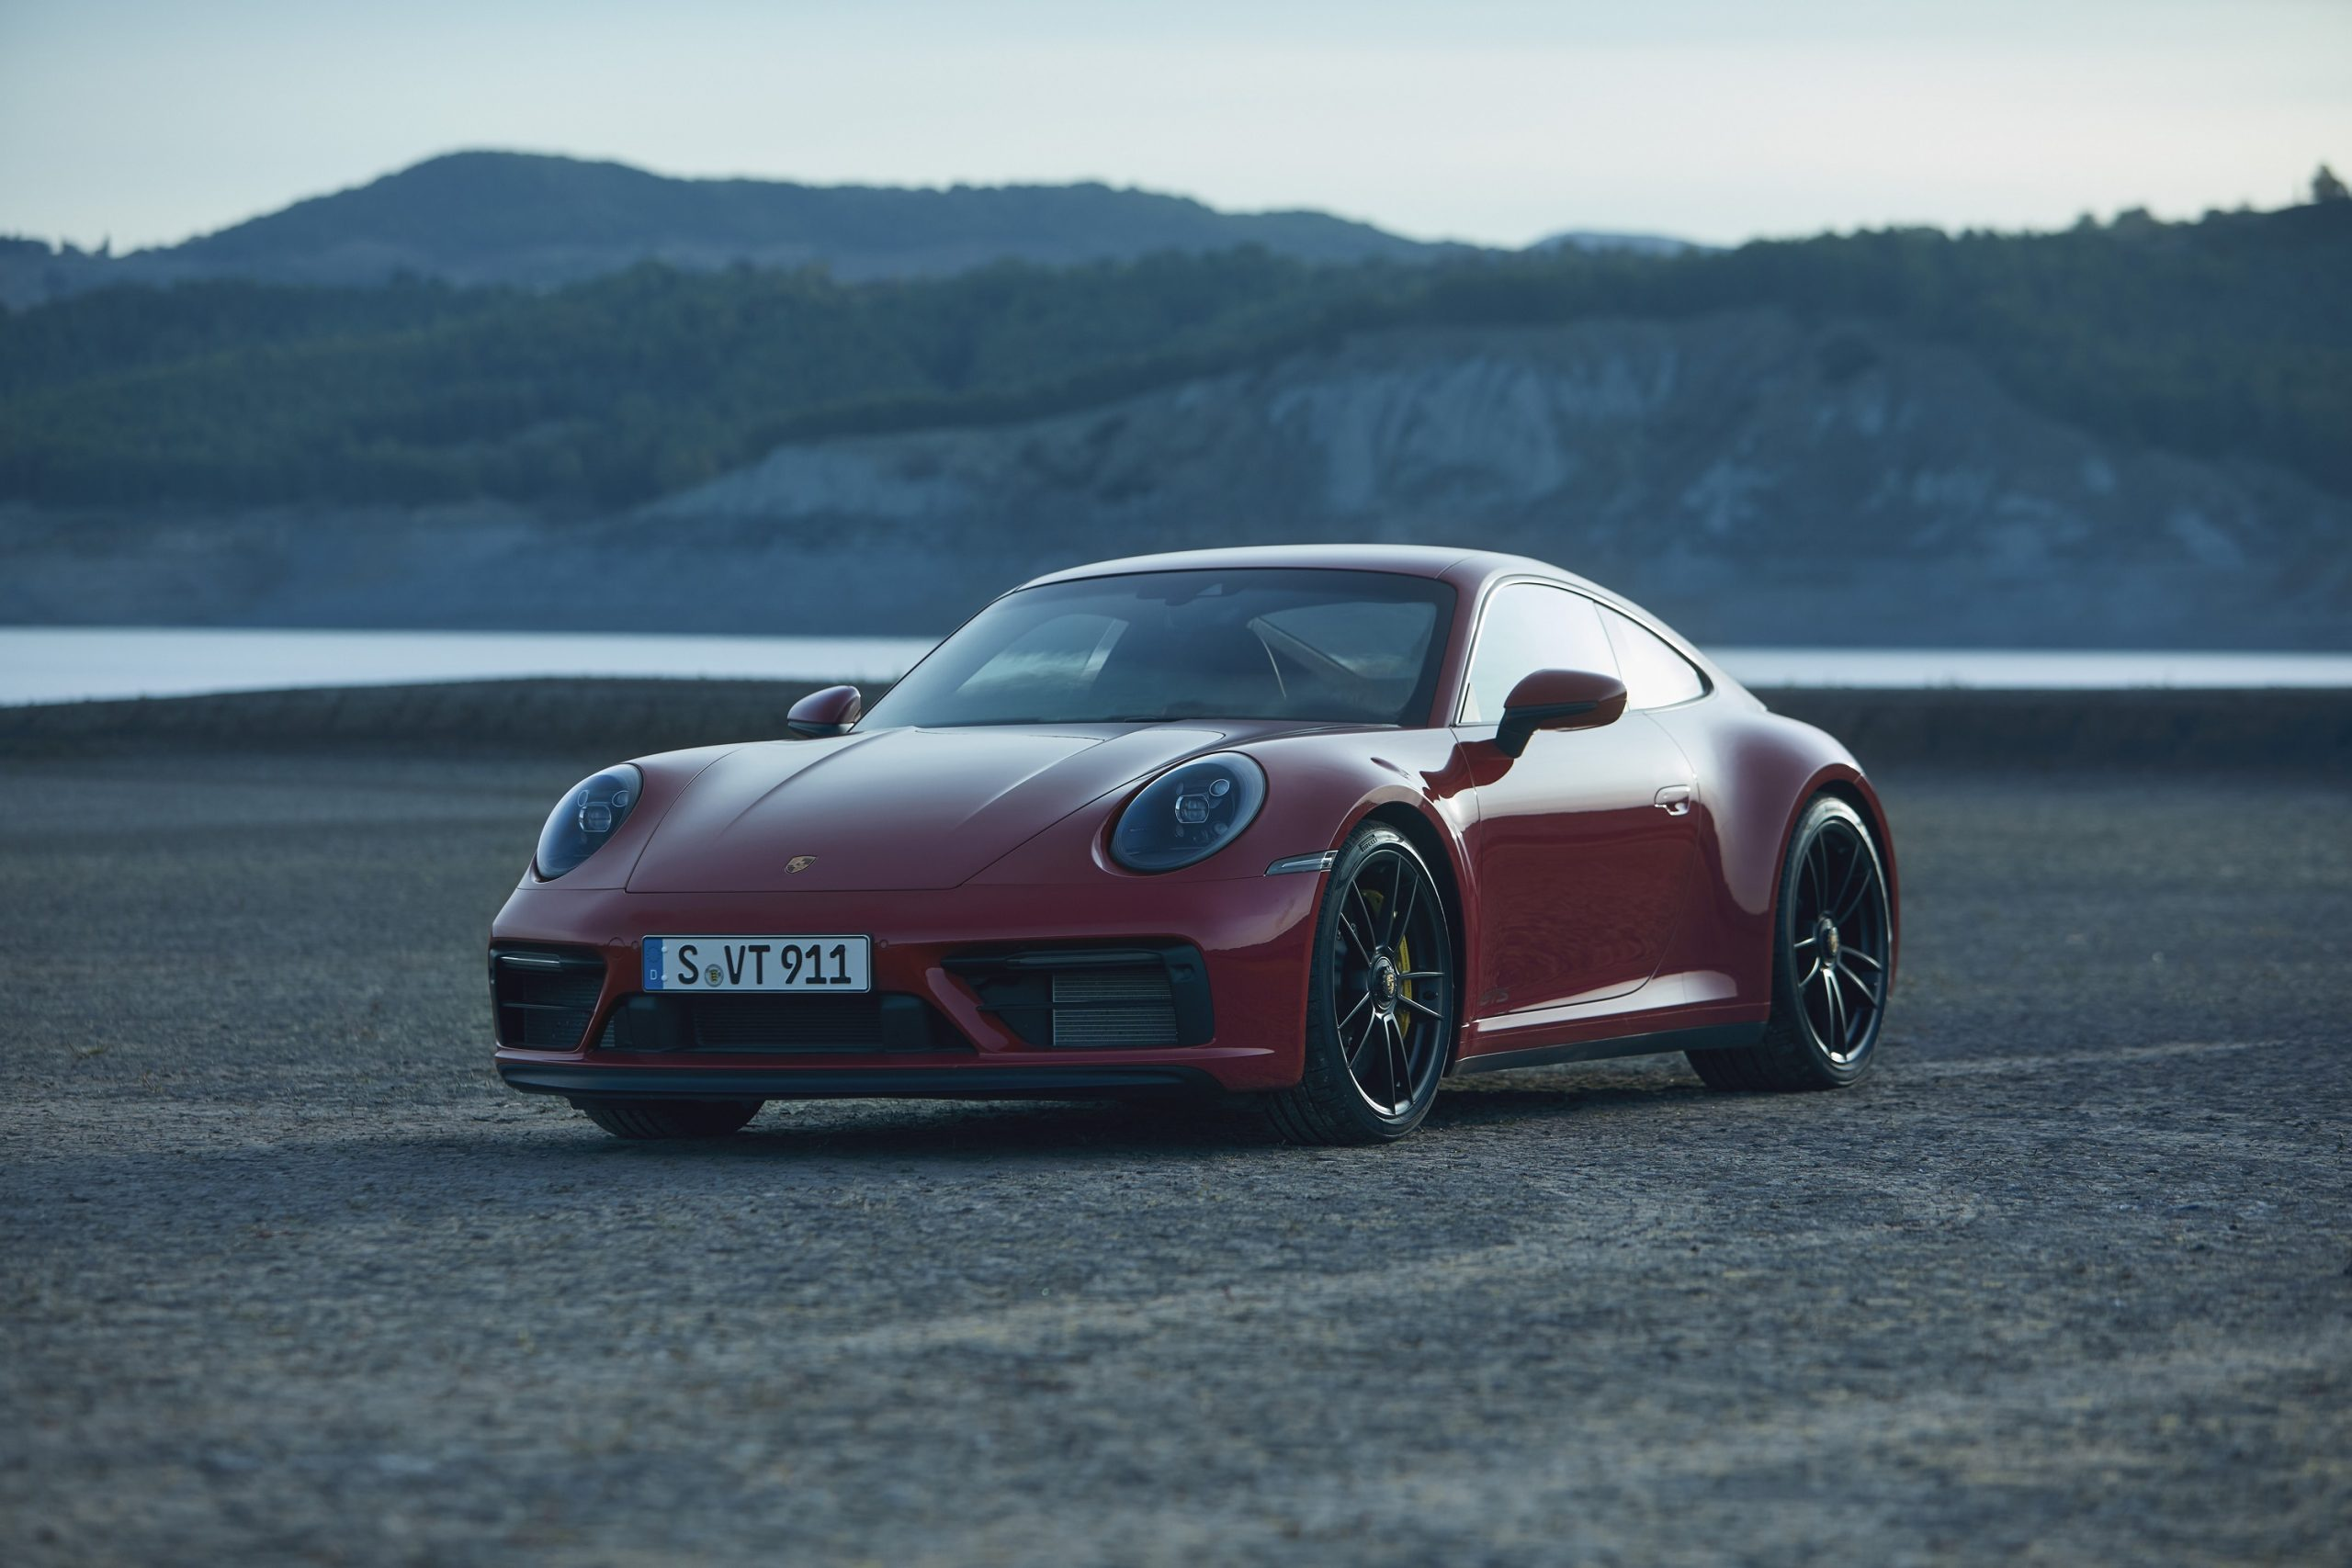 A red Porsche 911 GTS on a beach at sunset, shot from the front 3/4